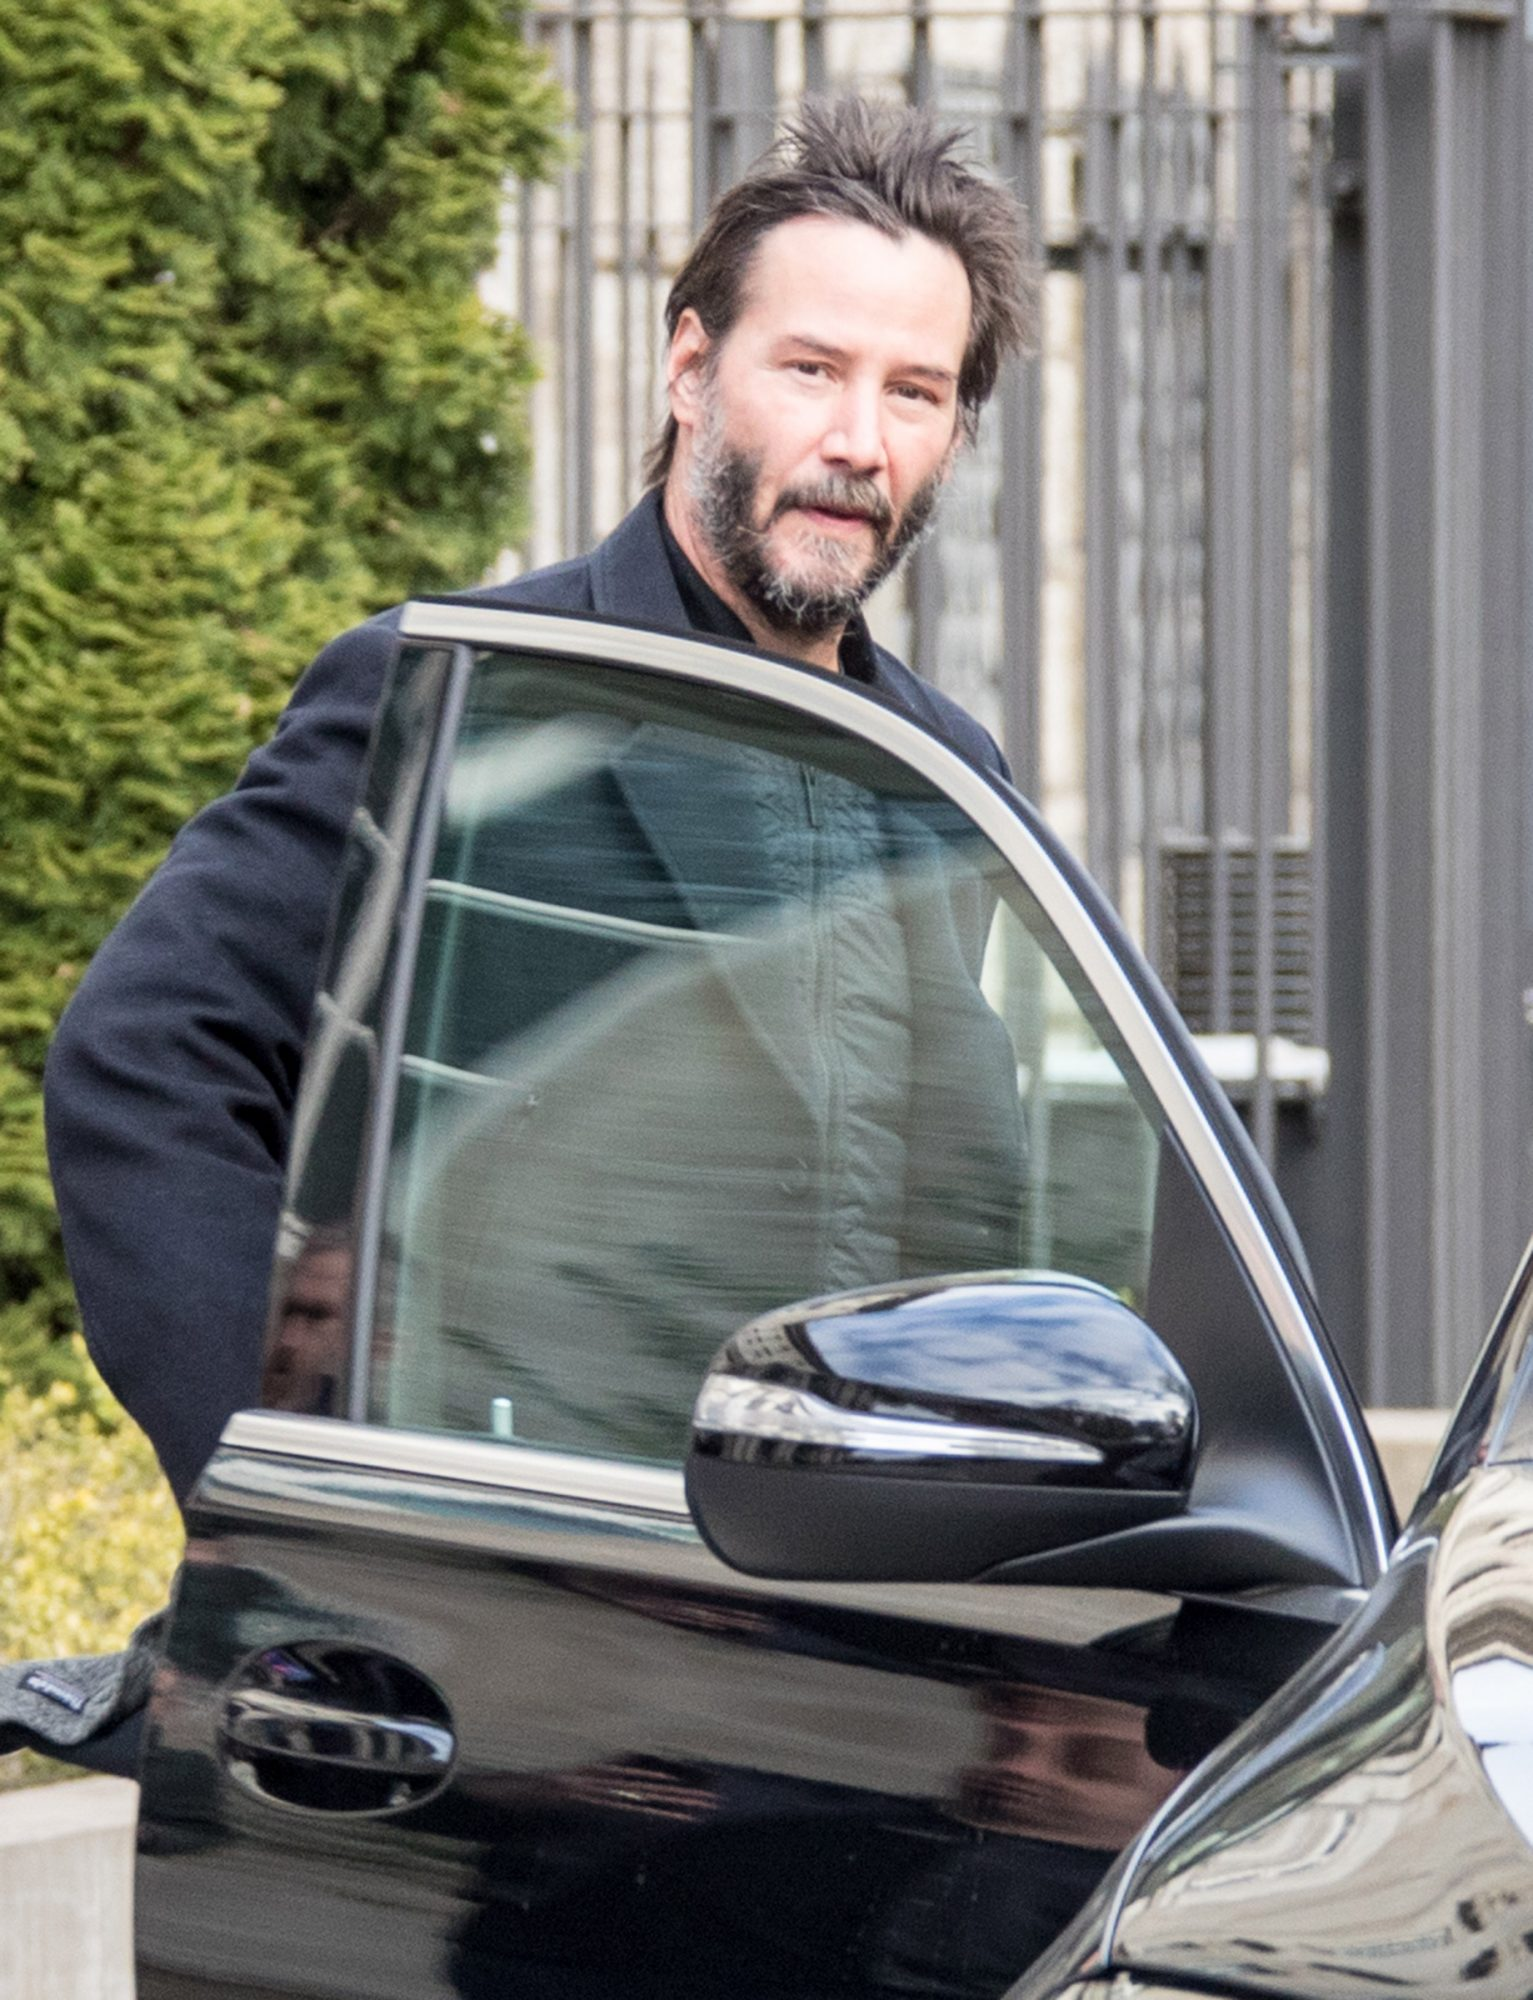 Keanu Reeves Telling His Waiting Fans That He Won't Sign Autographs And Won't Be Available For A Selfie Or Other Photos When He Leaves His Hotel In Berlin, Germany